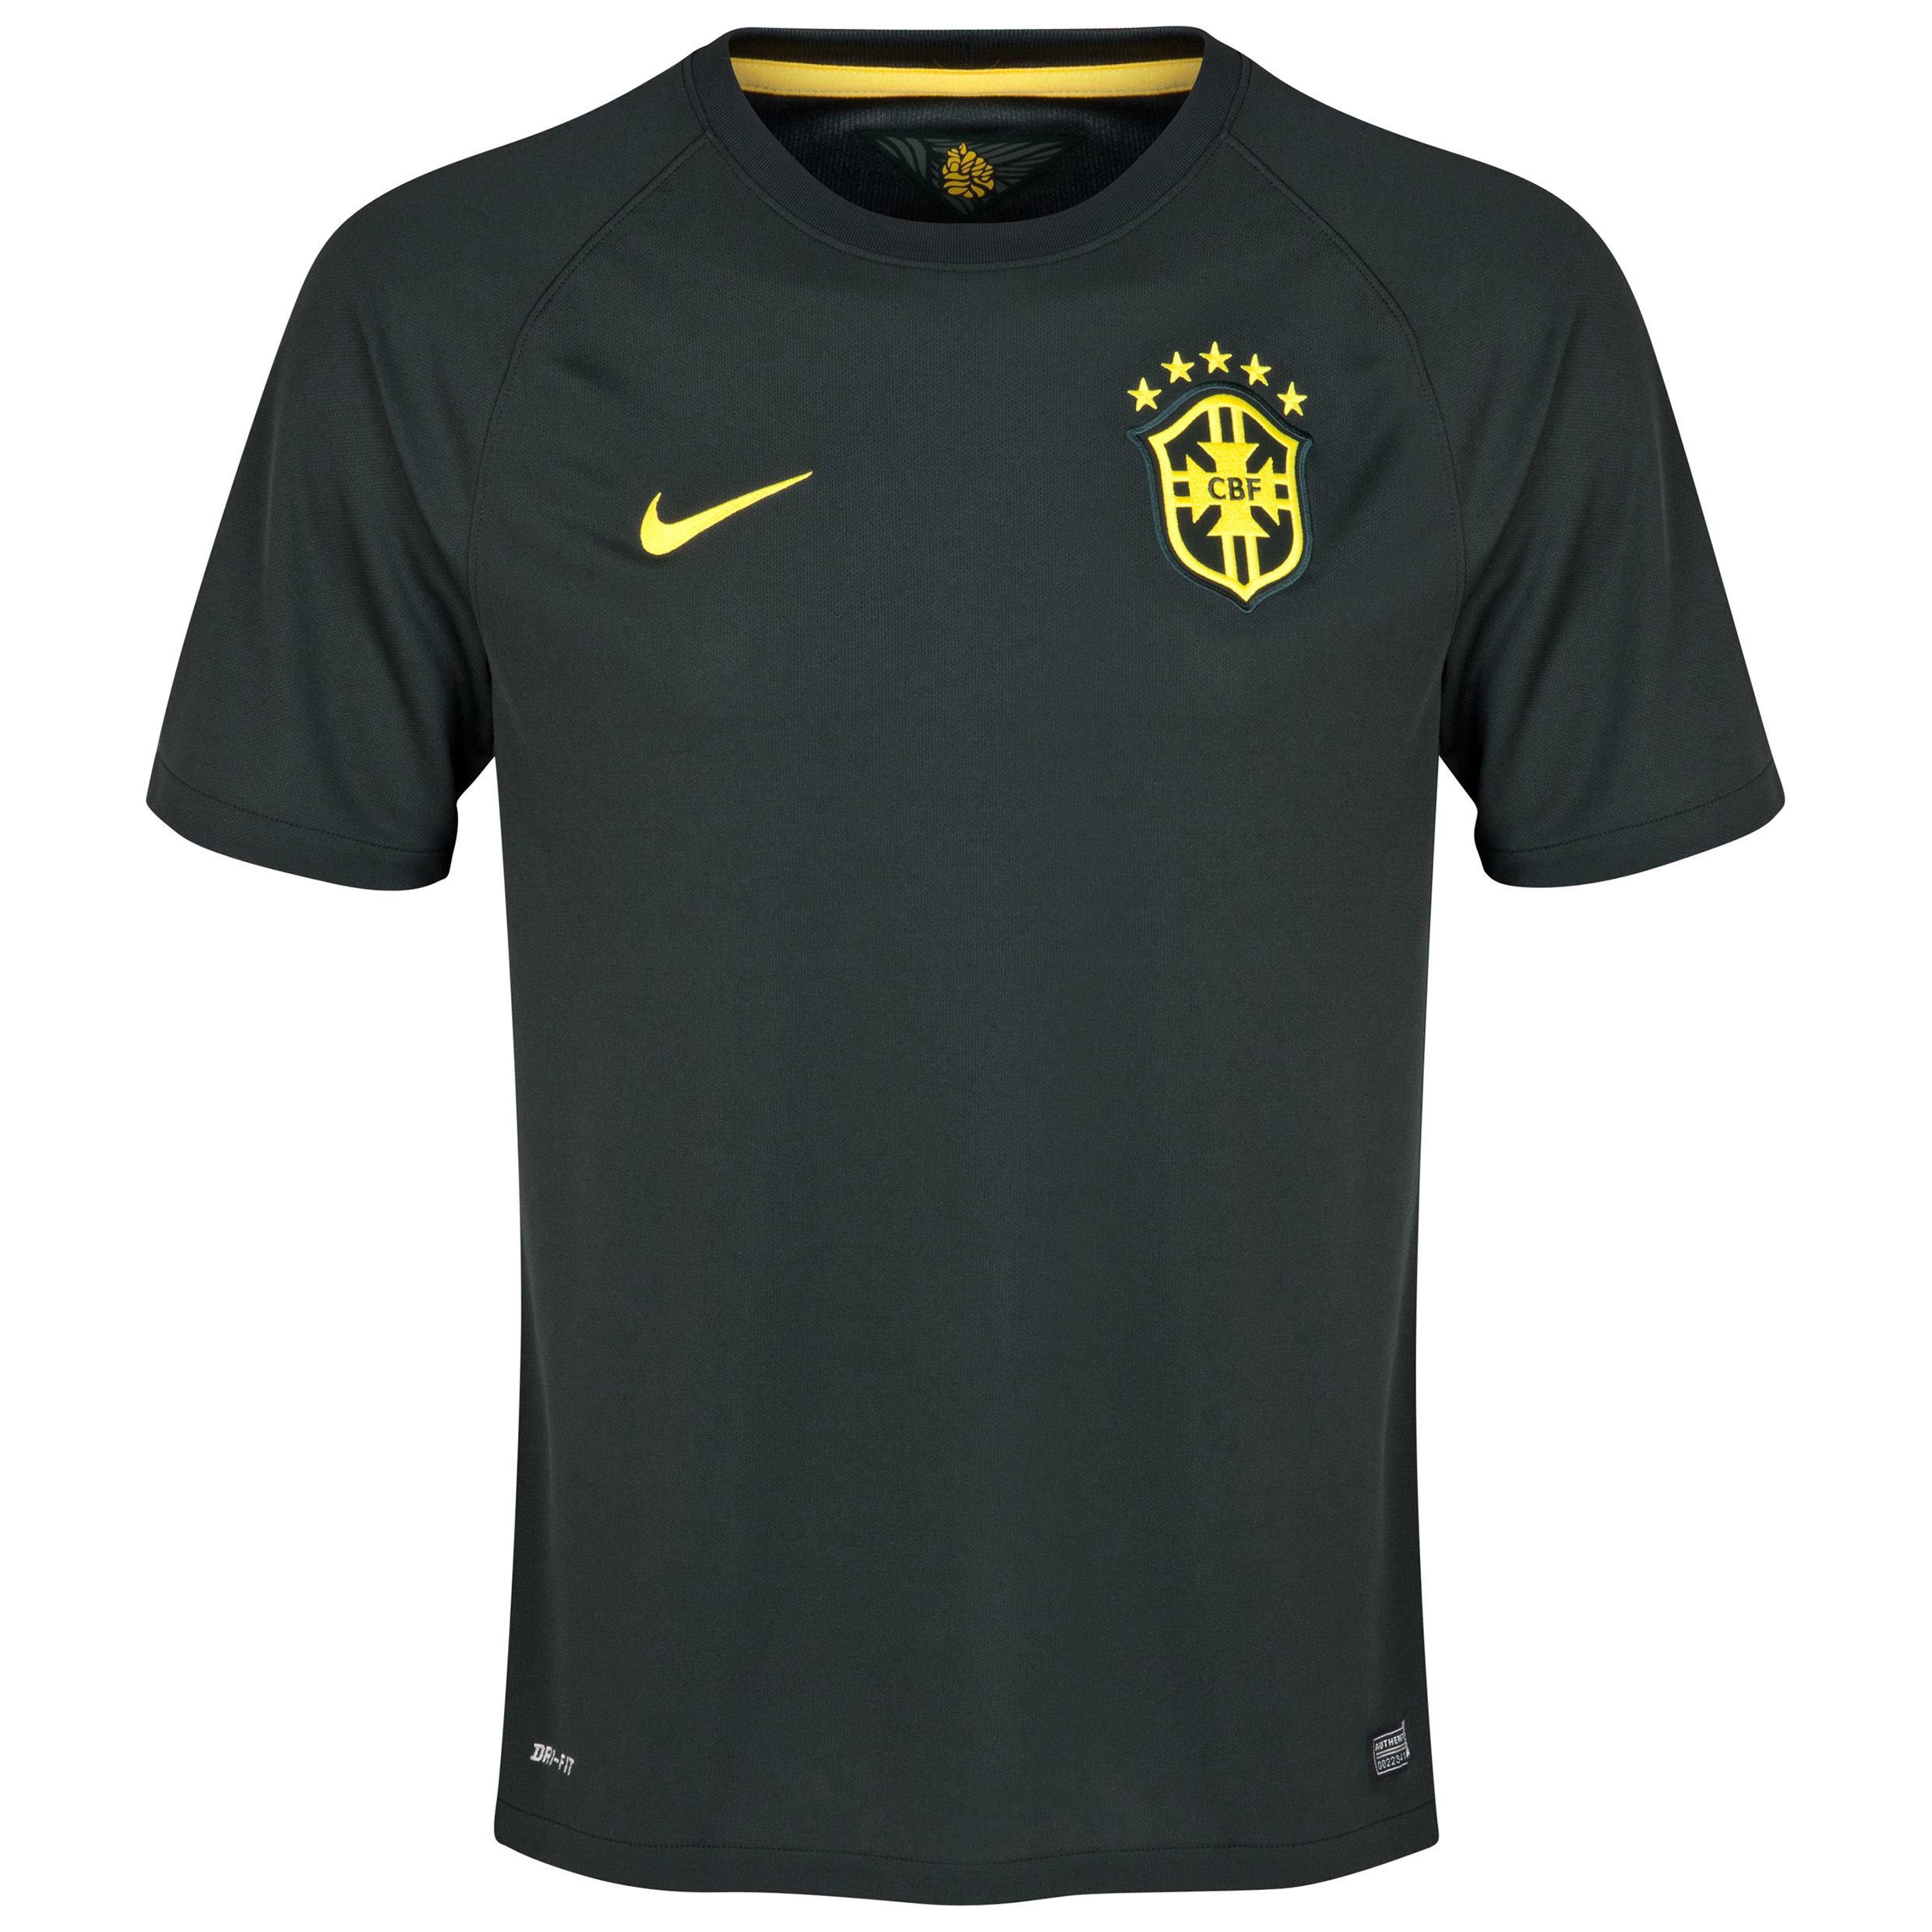 Brazil Third Shirt 2014 Black